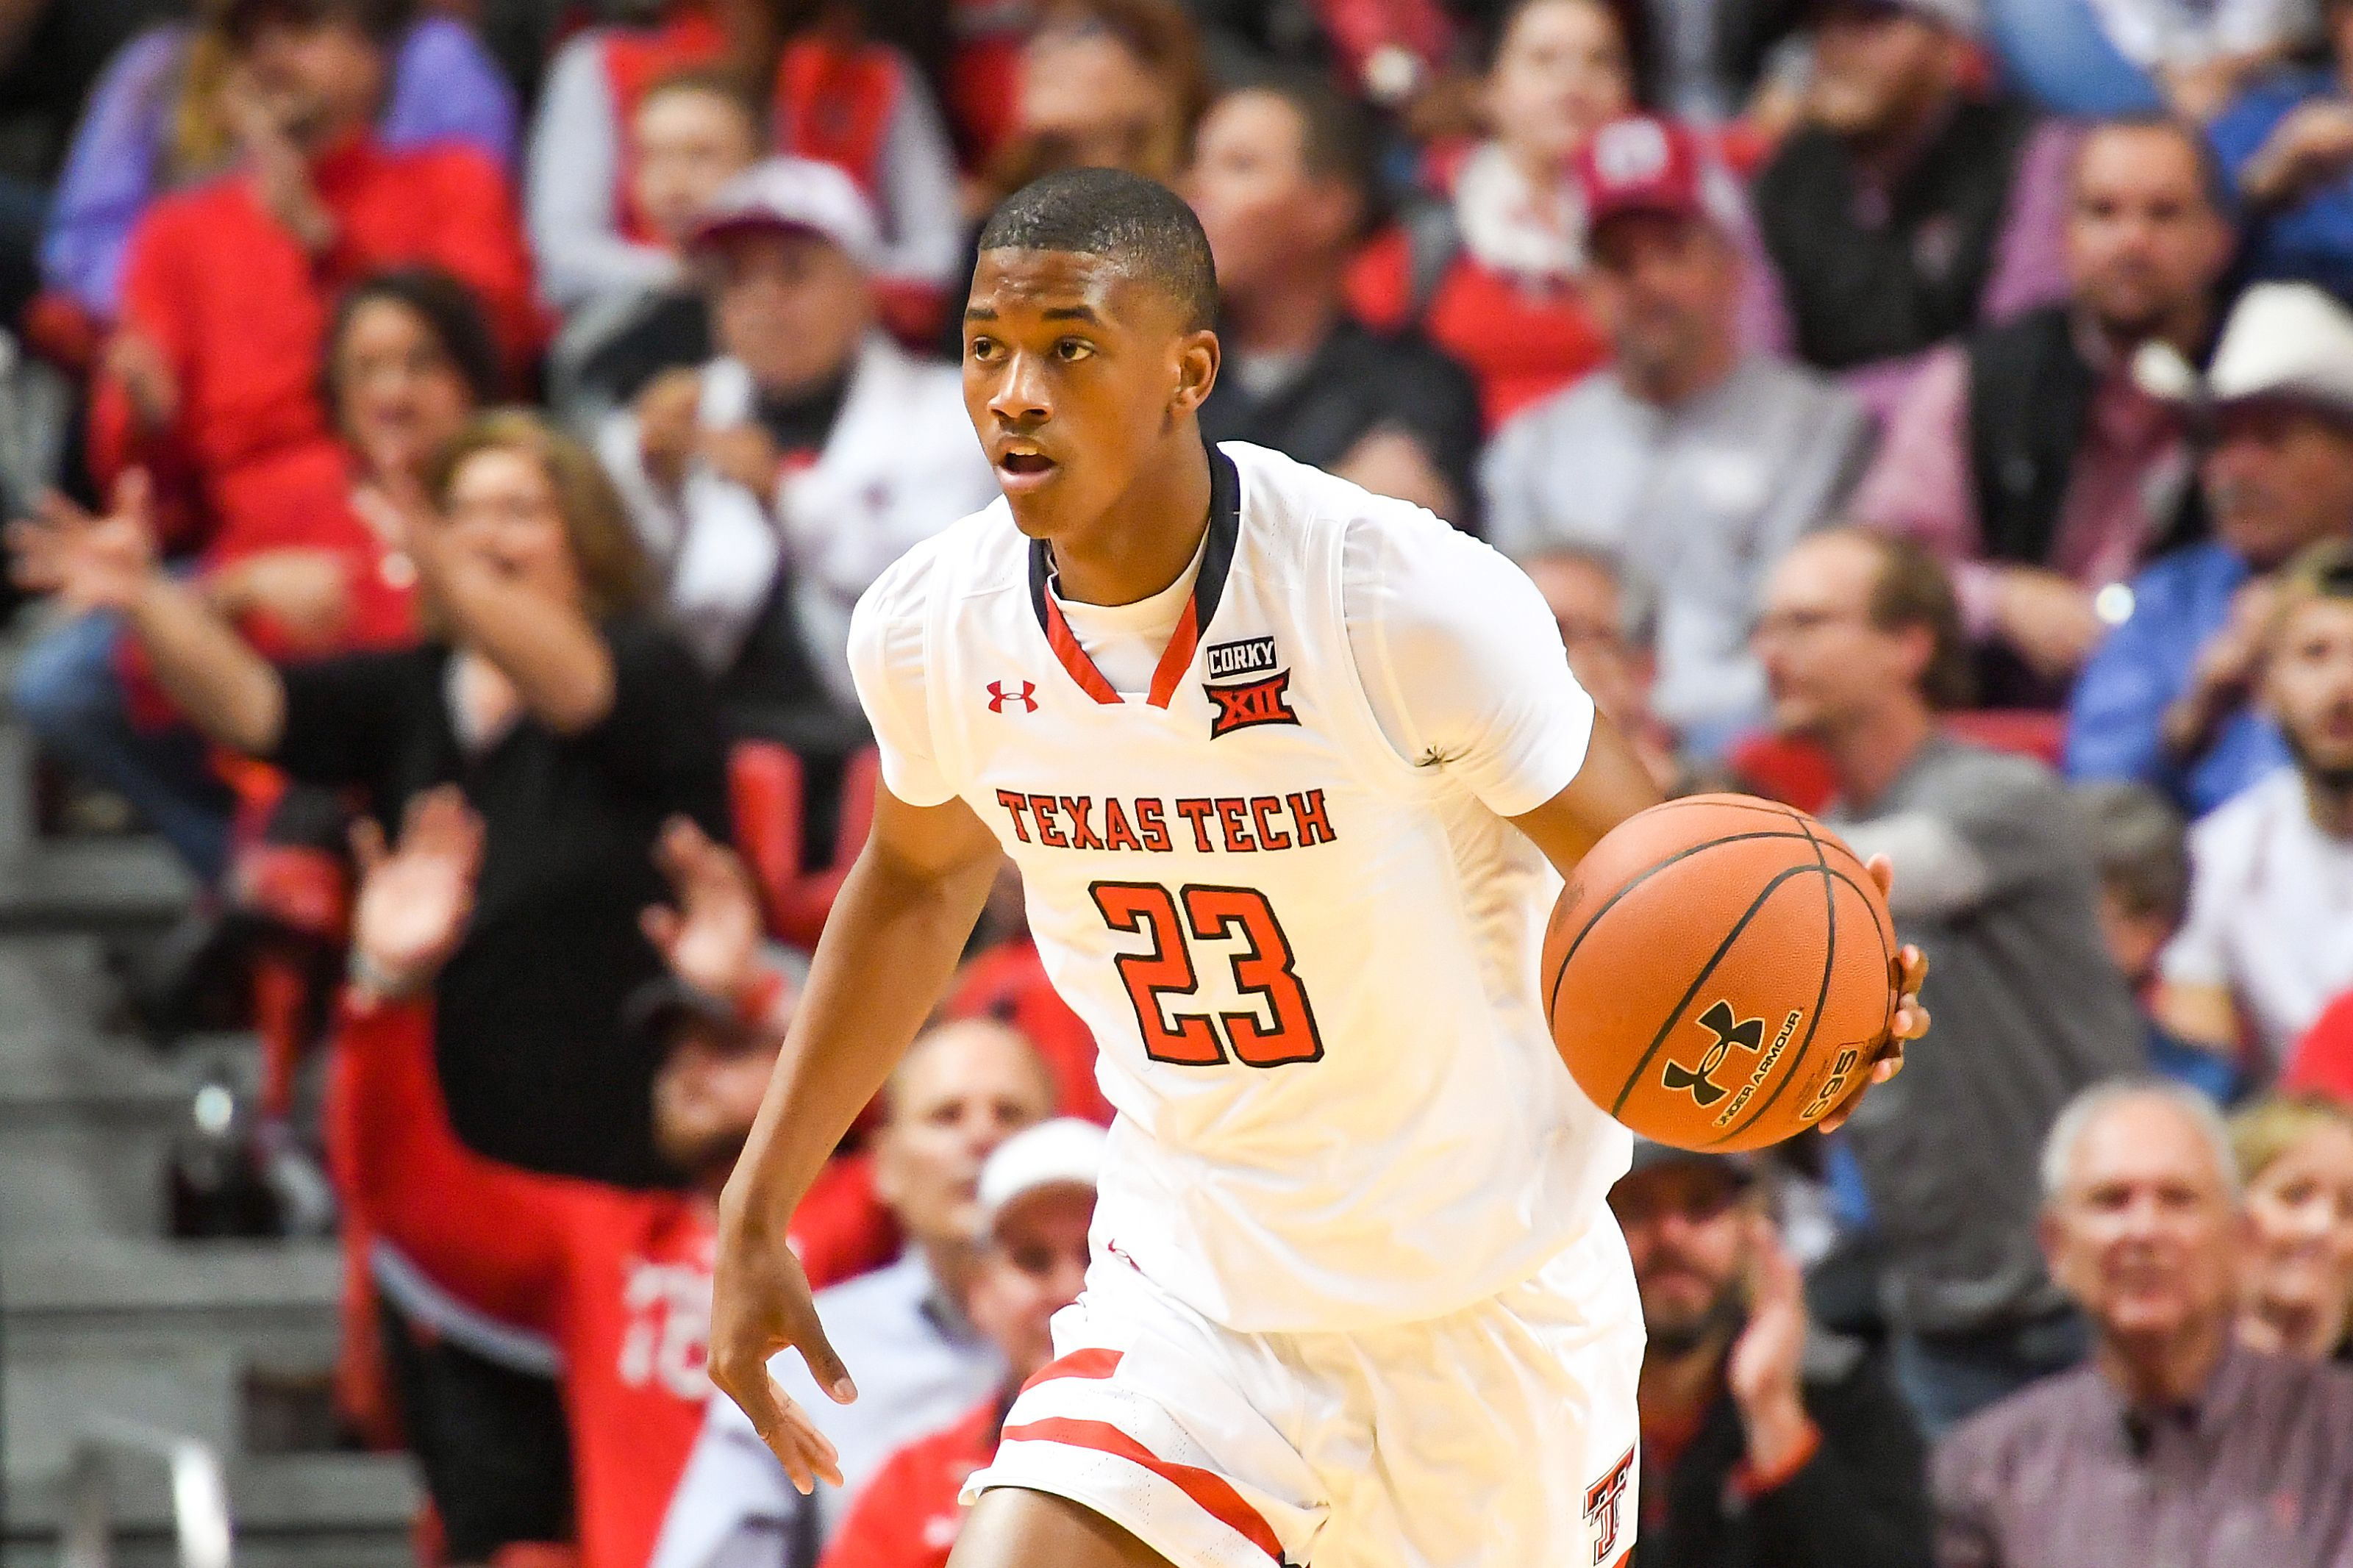 Texas Tech Basketball 5 Players To Know From The West Region Wreck Em Red Business Telegraph